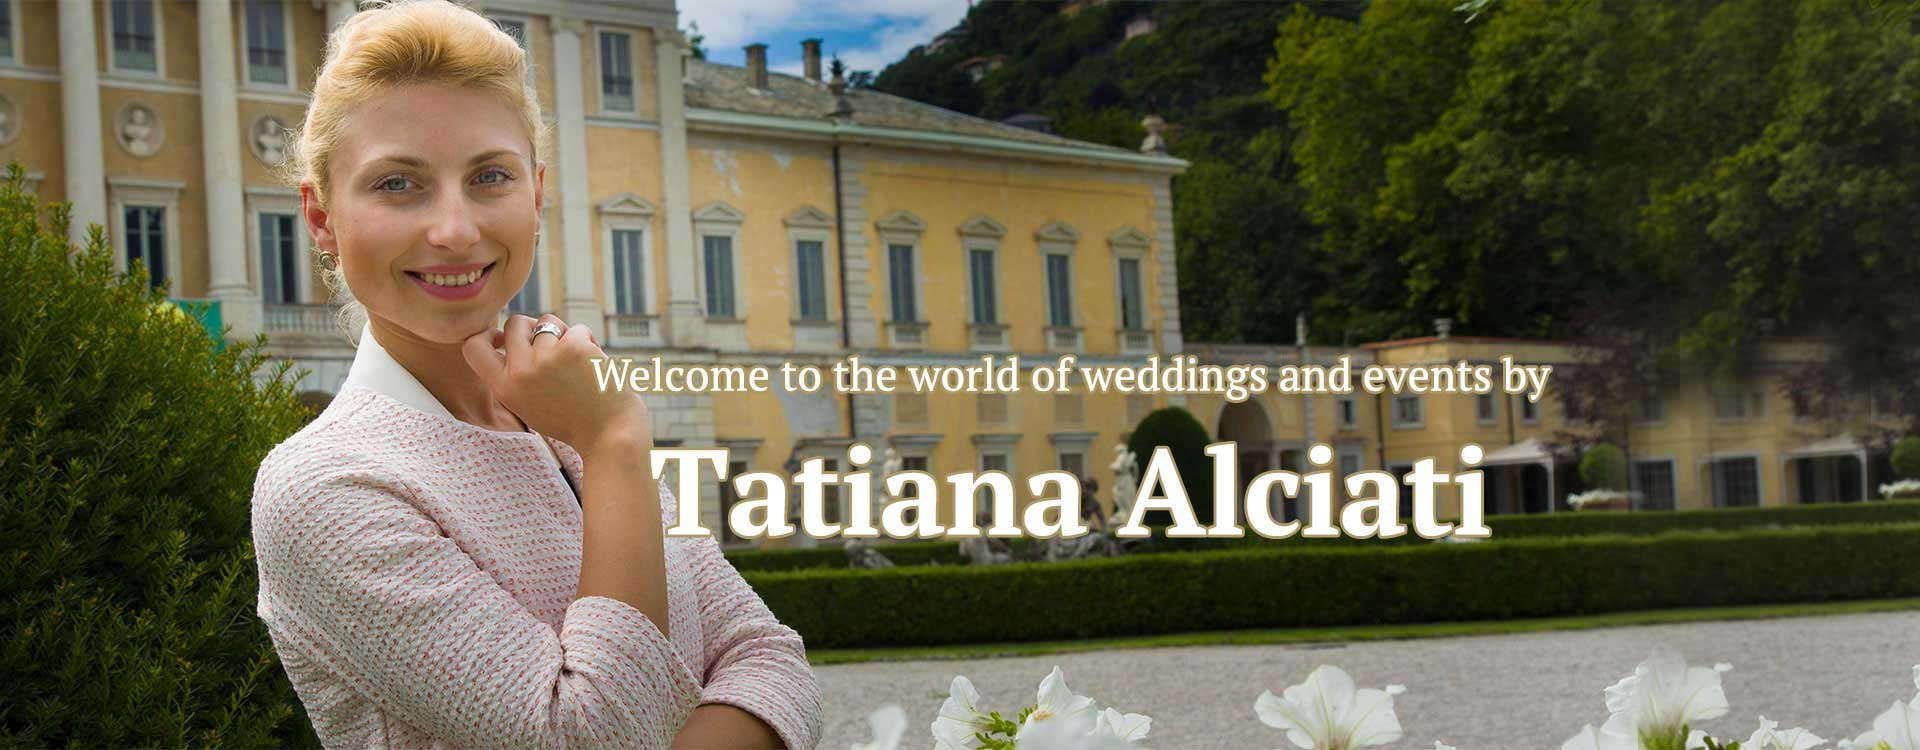 Tatiana Alciati Weddings & Events